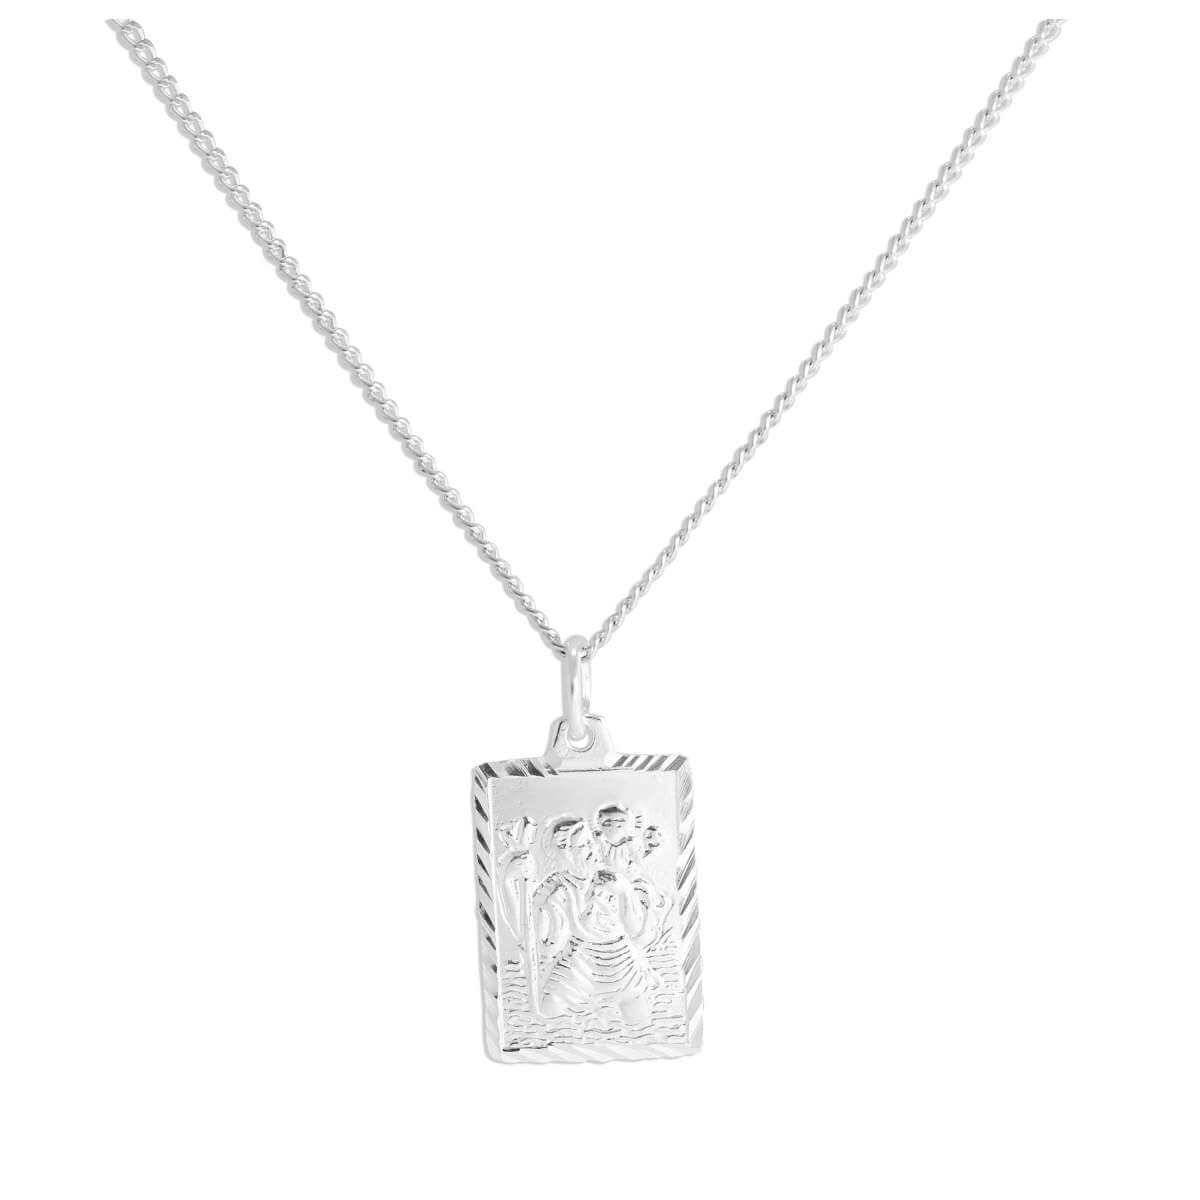 Sterling Silver Diamond Cut Rectangular St Christopher Necklace 16 - 24 Inches